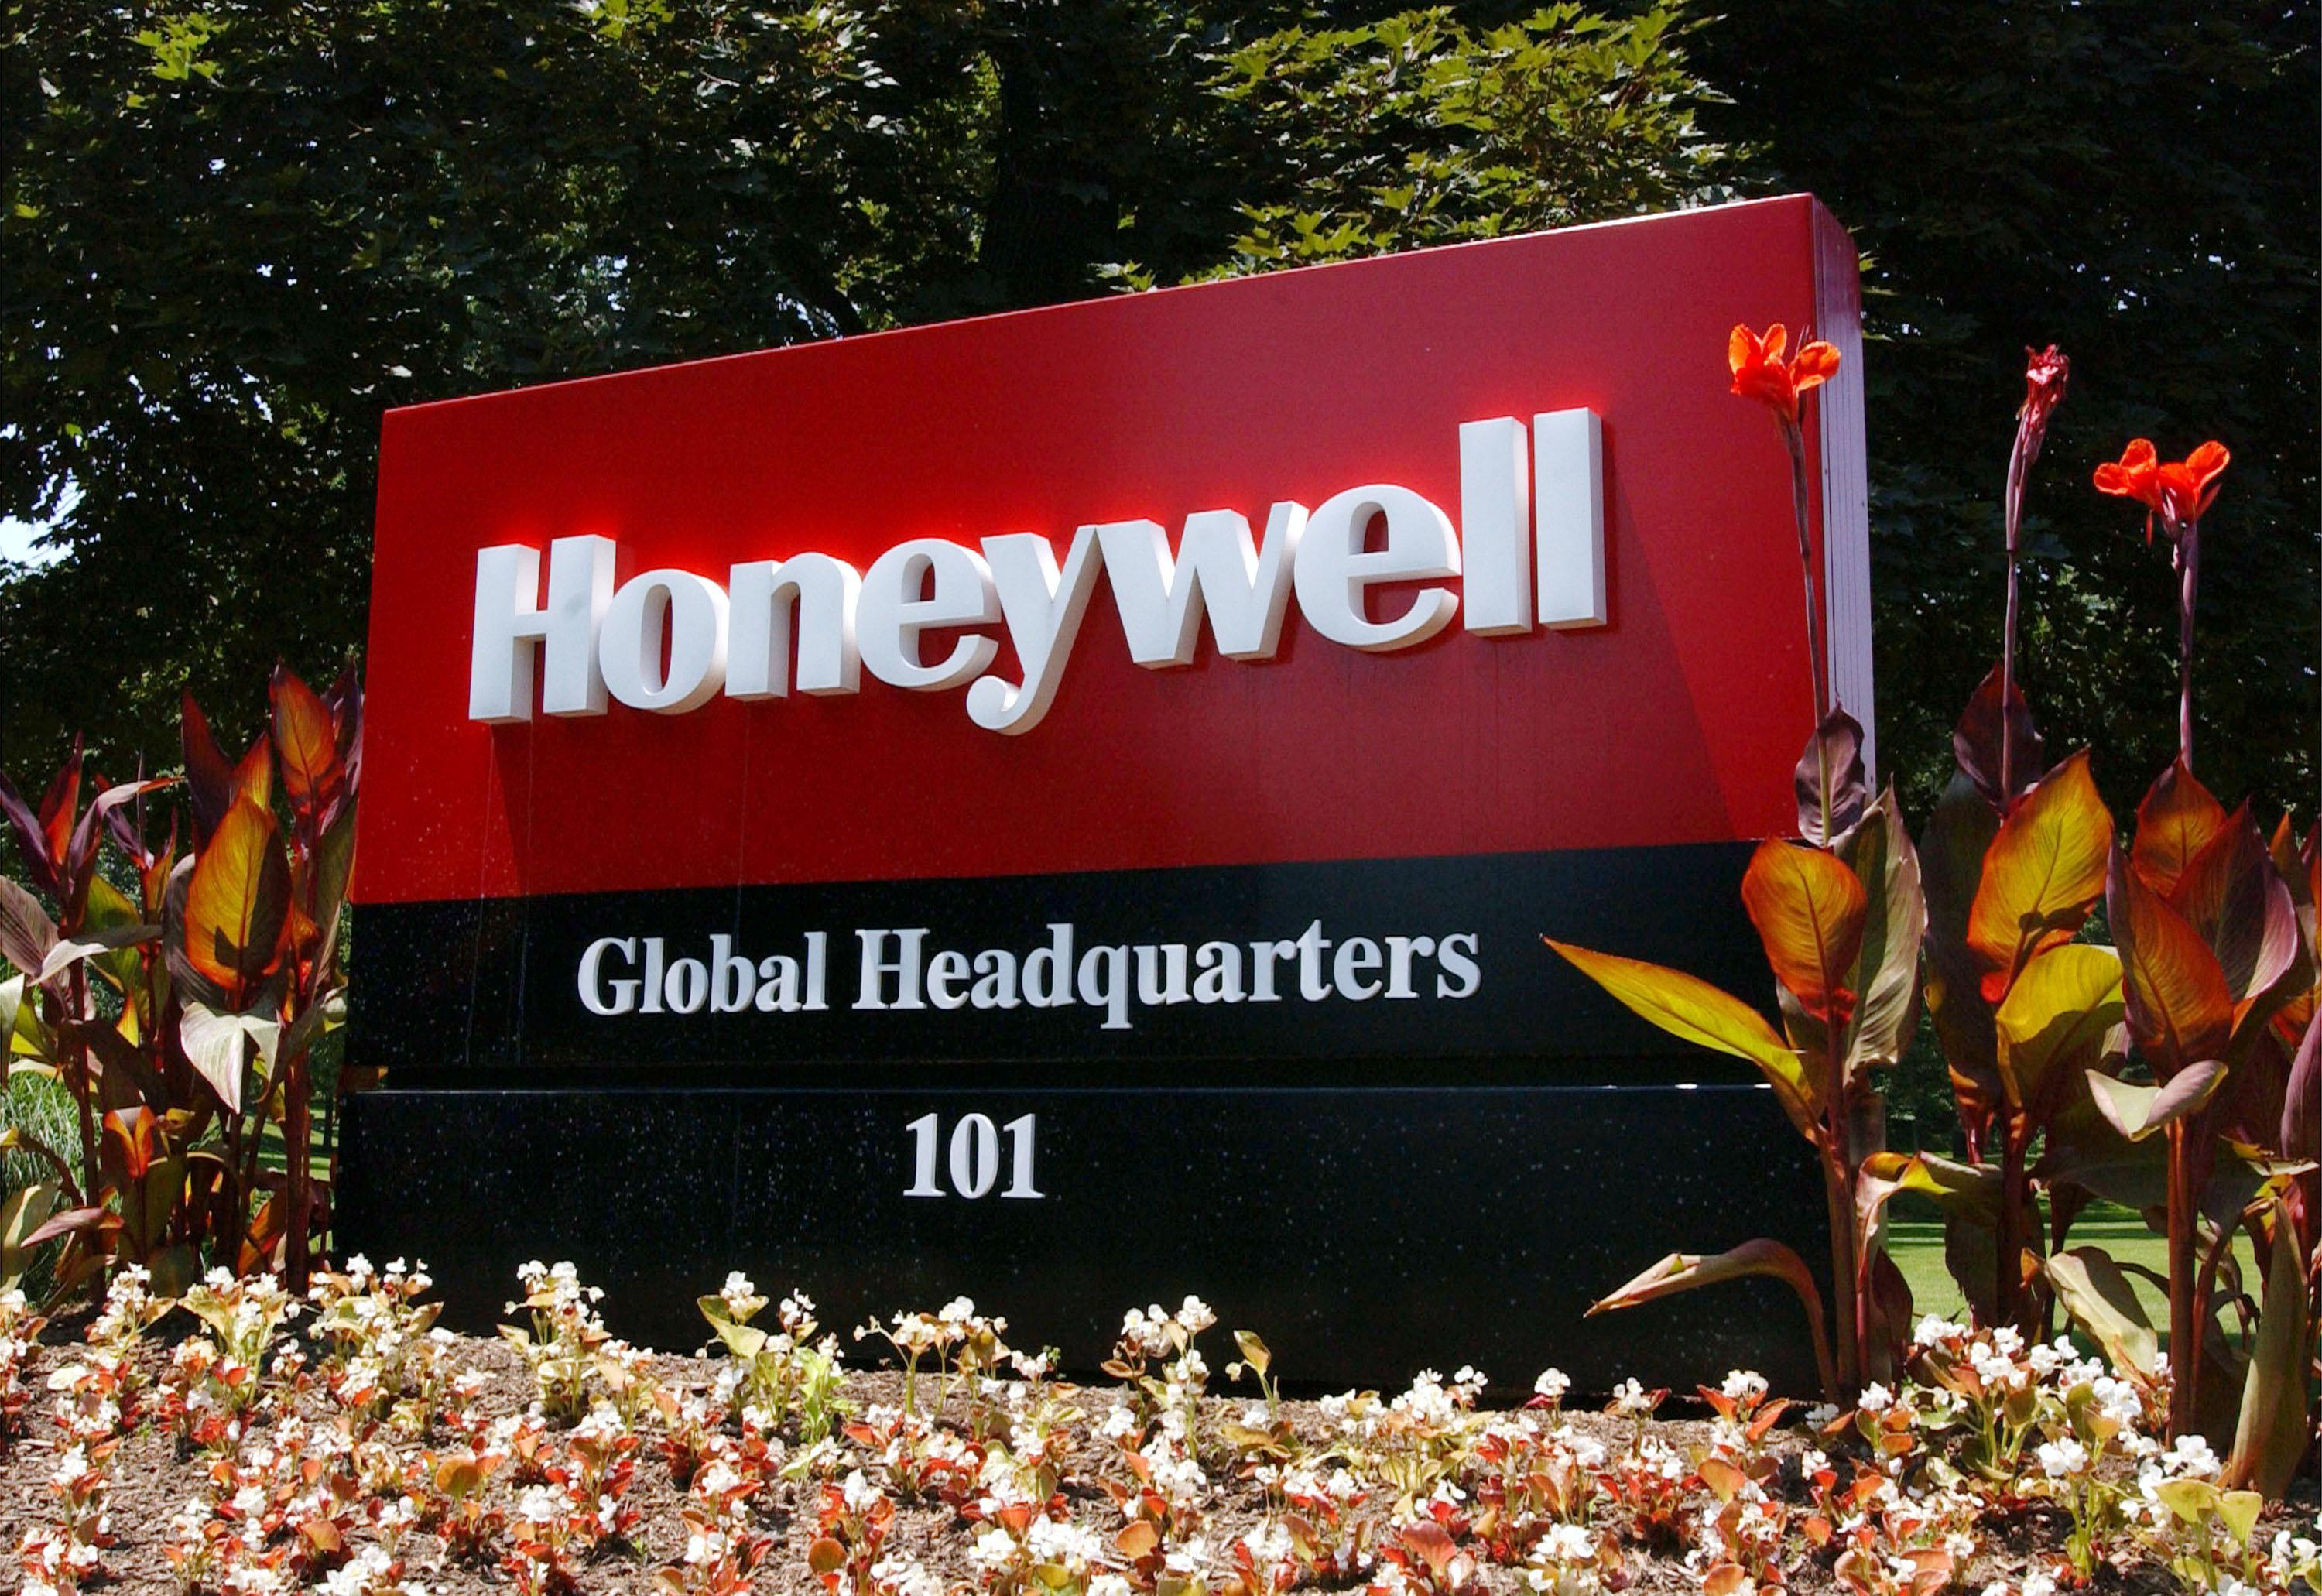 Honeywell on notice as upstart company inks big pipeline deal